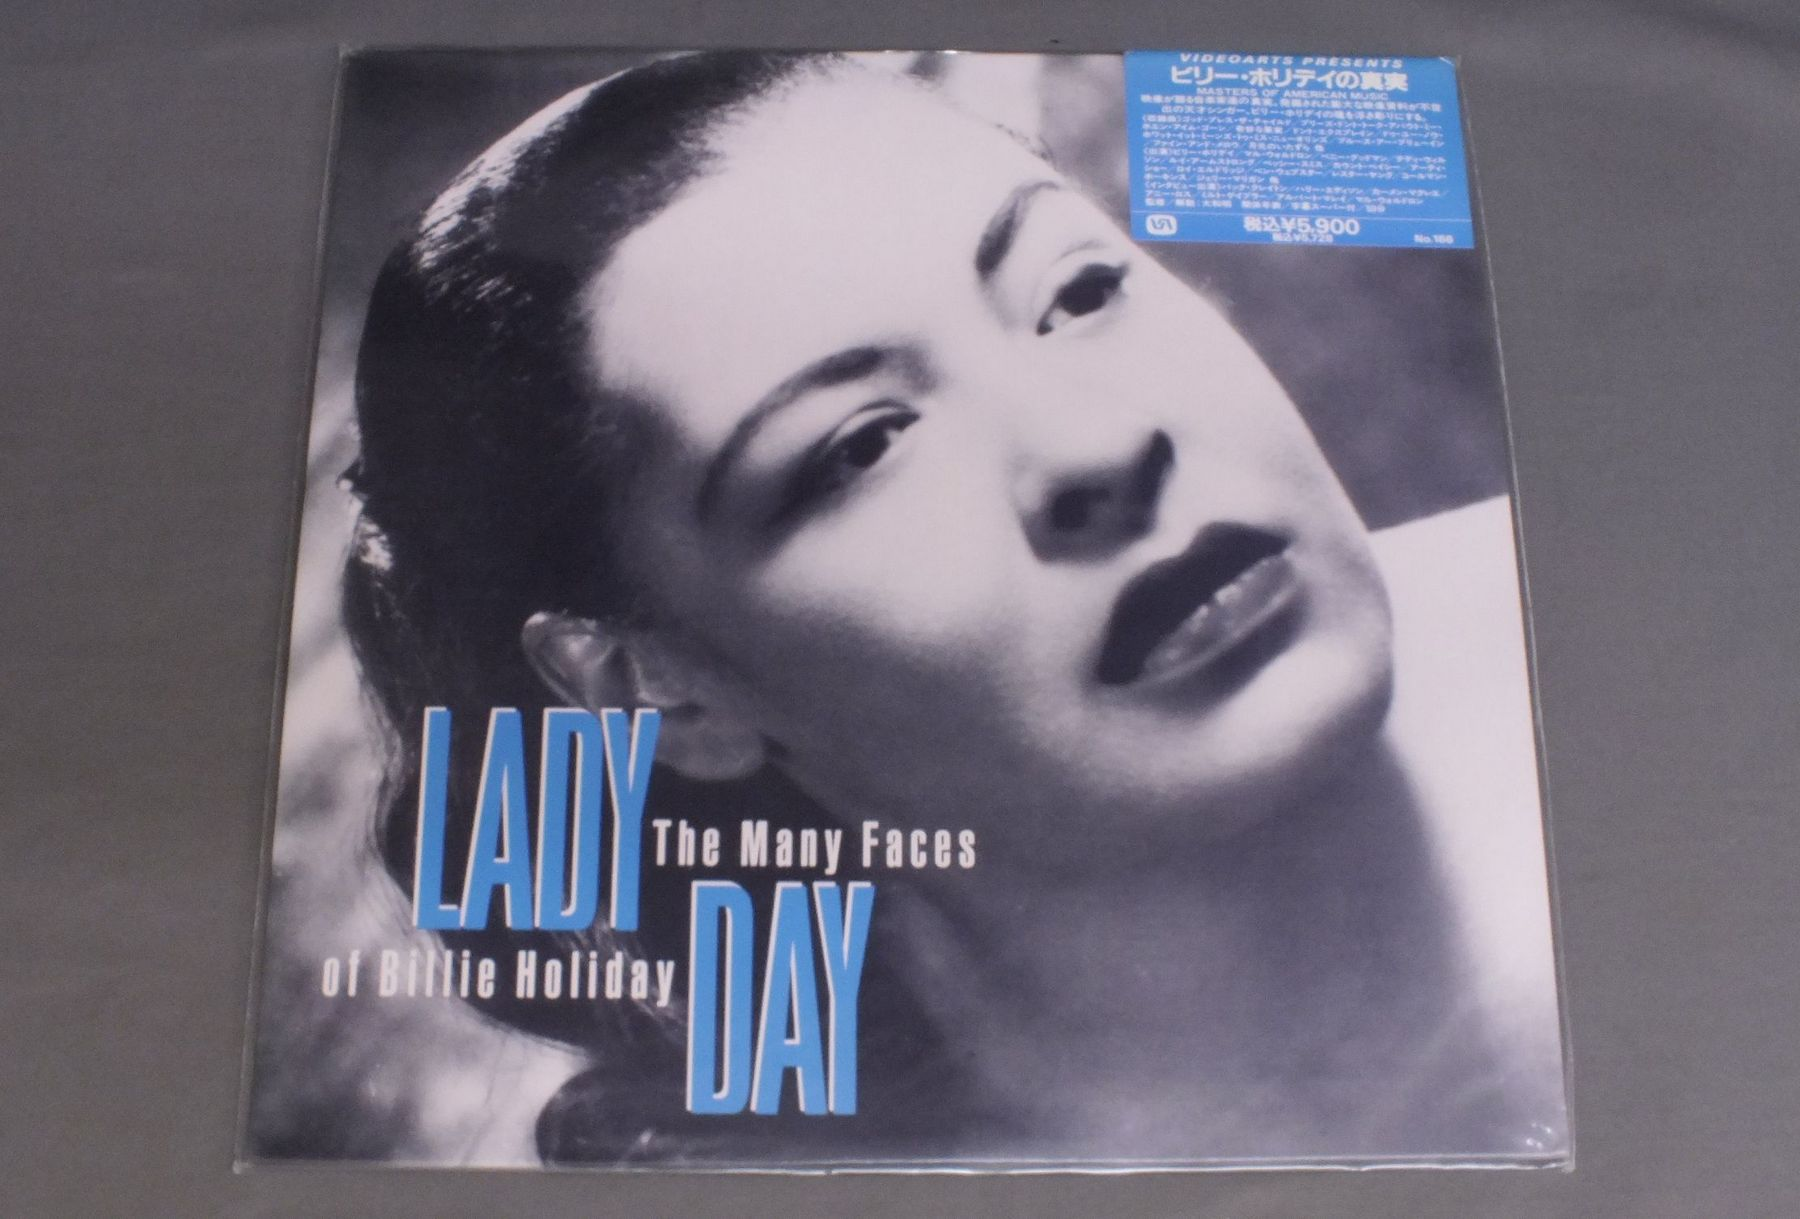 BILLIE HOLIDAY - LADY DAY / MANY FACES OF BILLIE HOLIDAY - Laser Disc